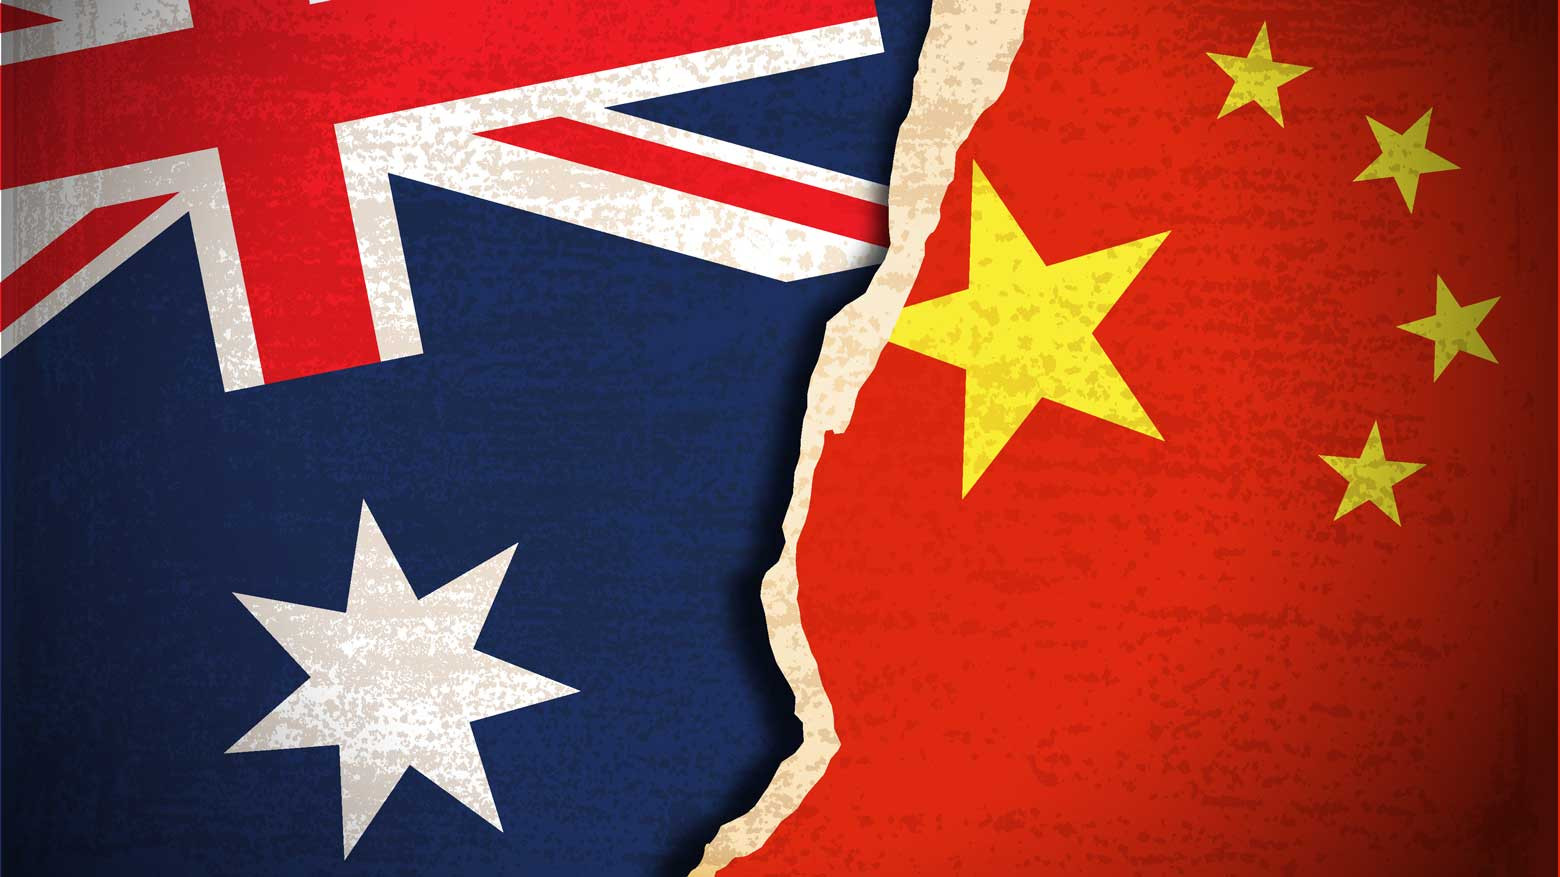 Trade war fallout? Australia demands China's apology for derogatory Tweet by its spokesman over its soldiers